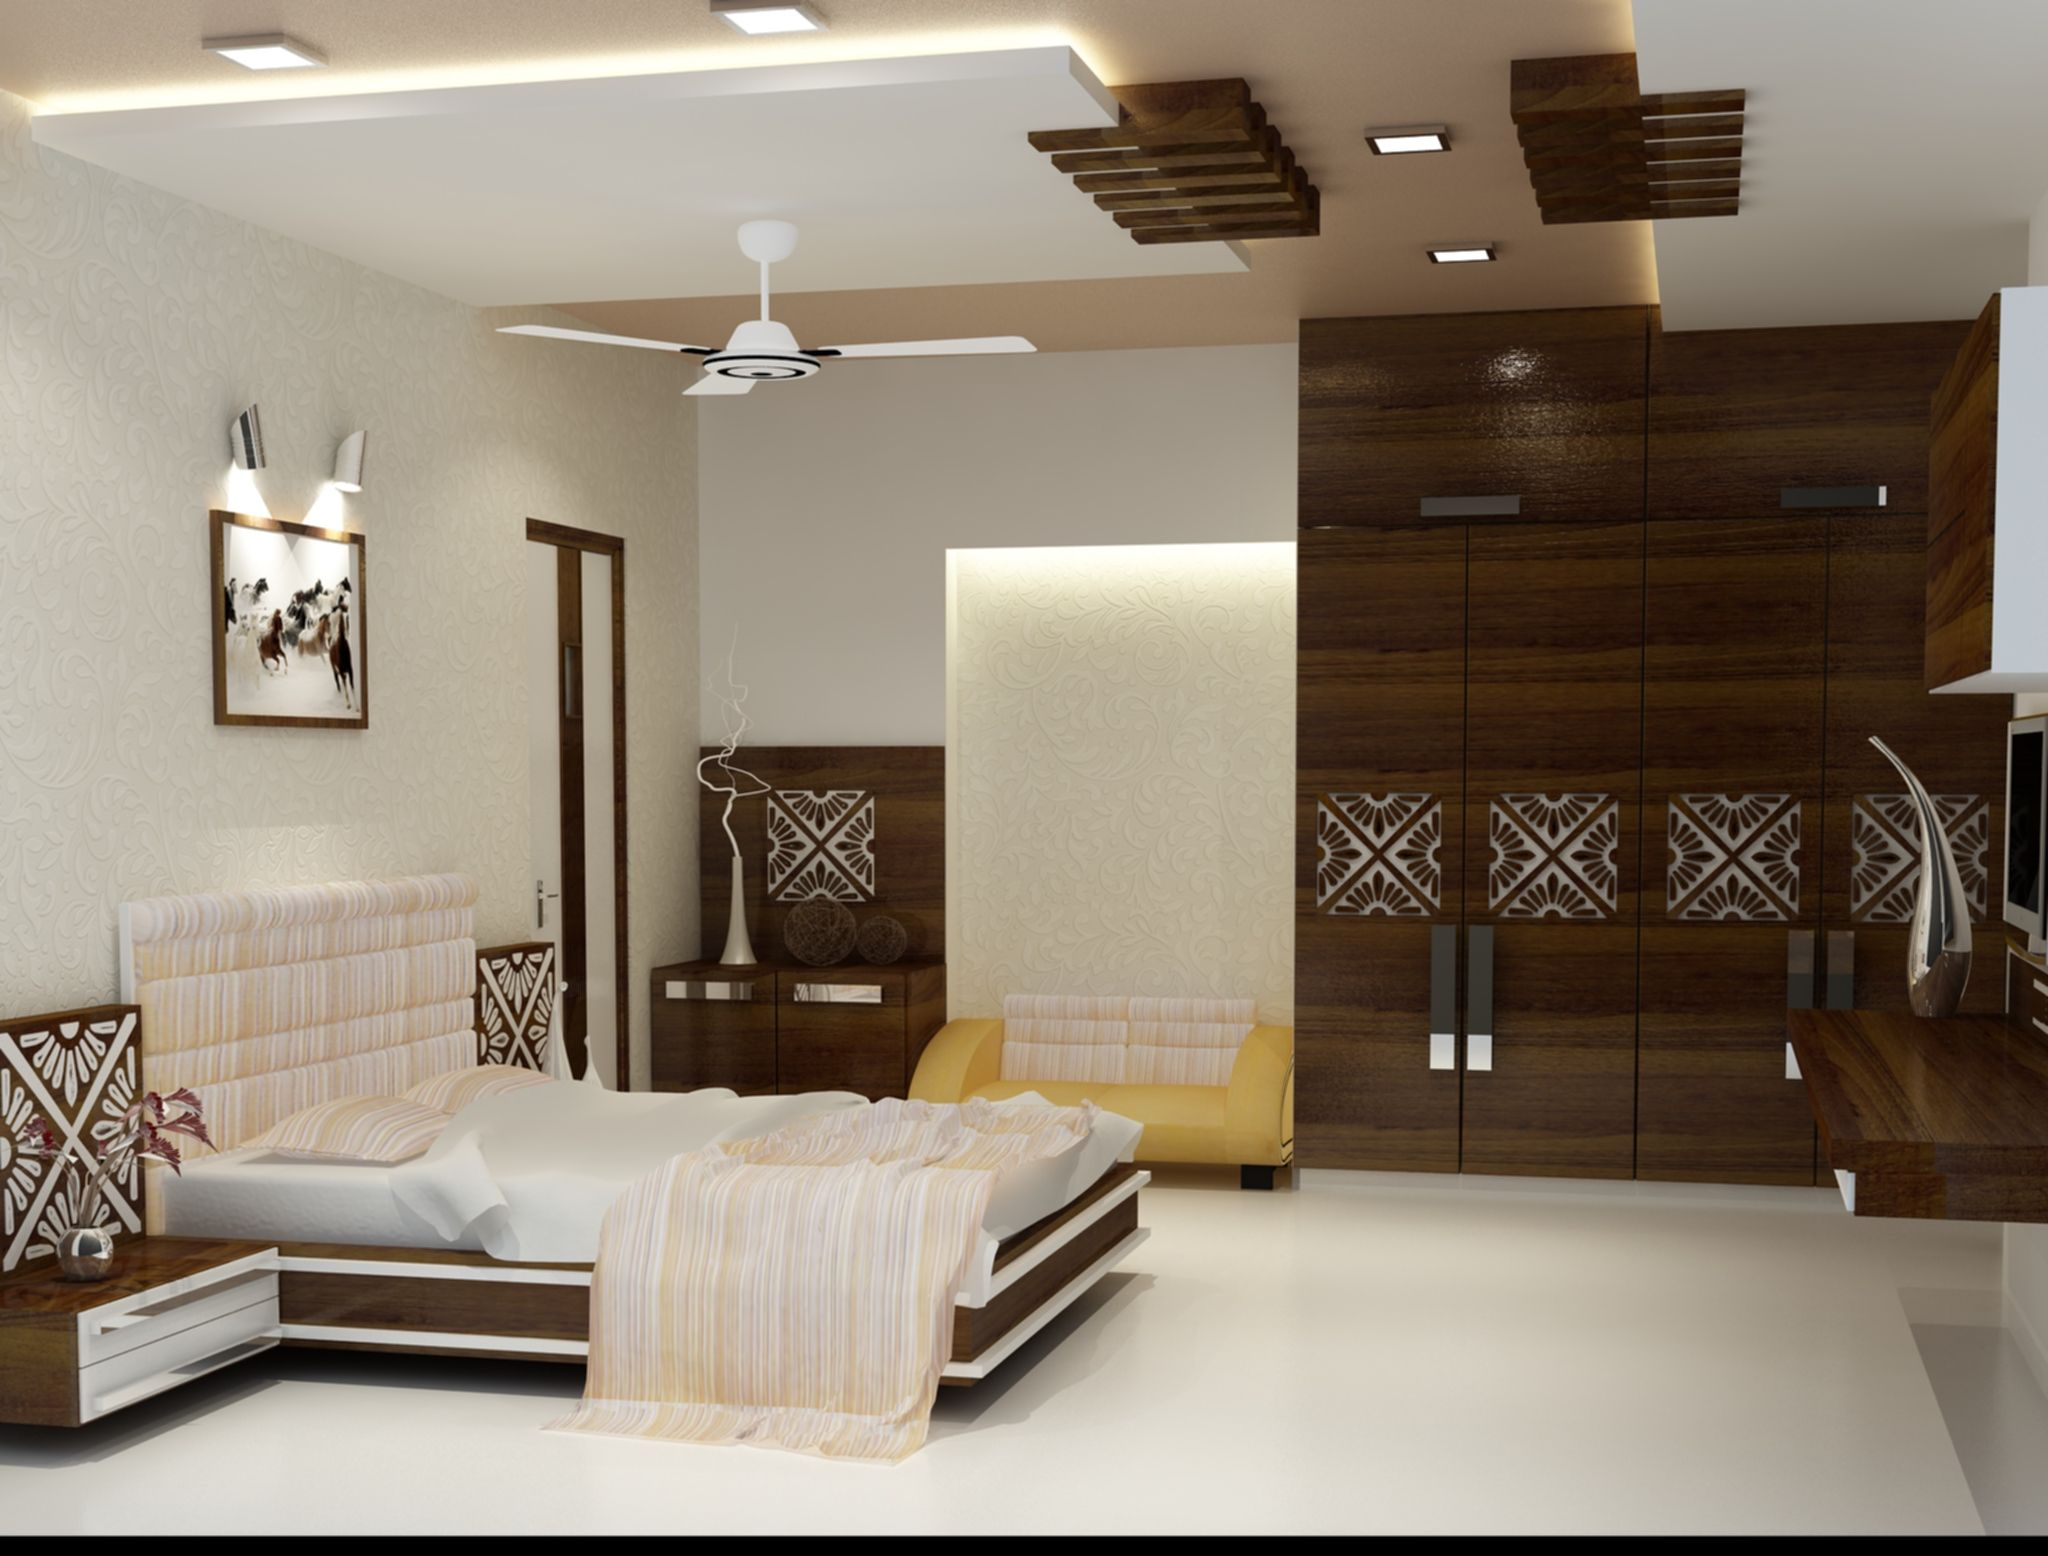 design for indian interiors - Google Search | Bedroom ...